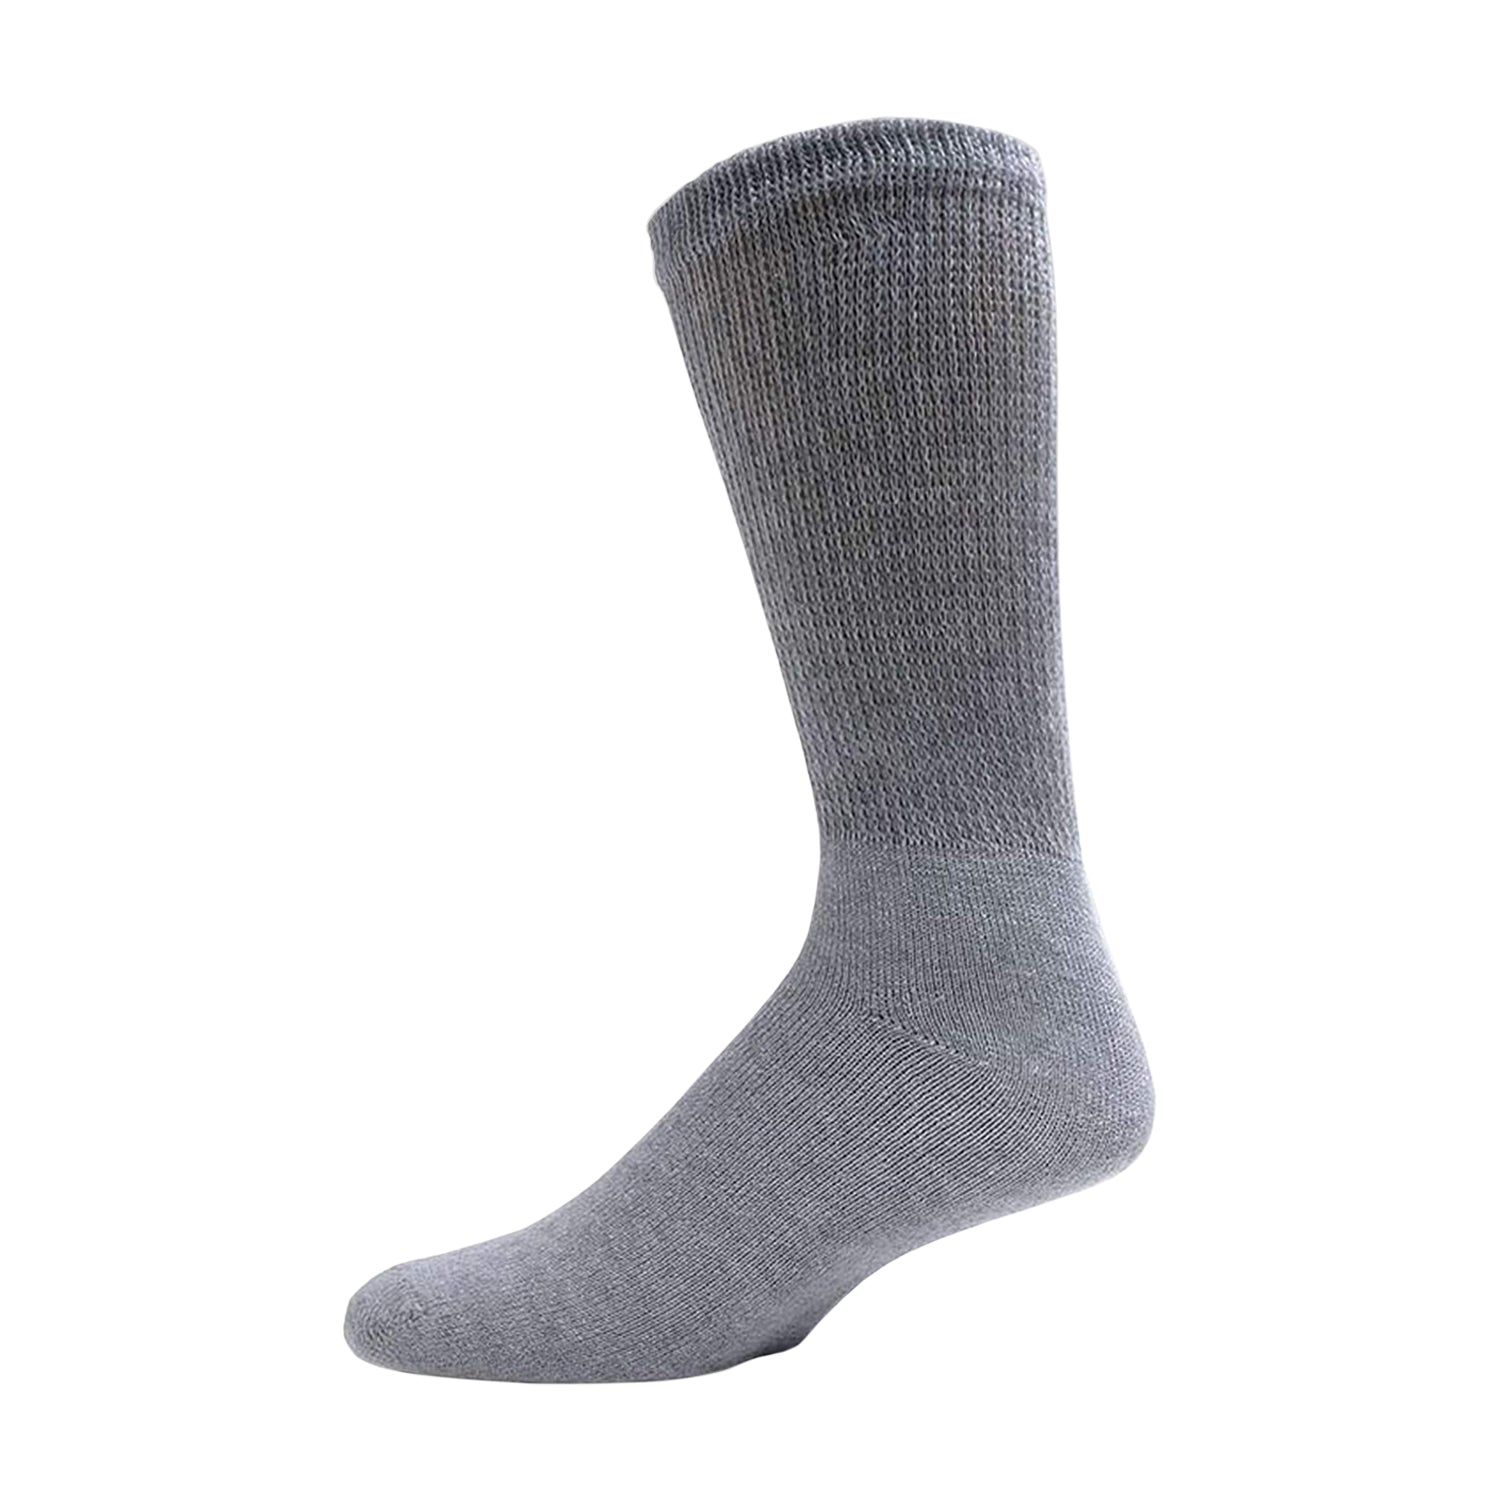 Gray Diabetic Crew Cotton Socks With Ribbed Nonbinding Top